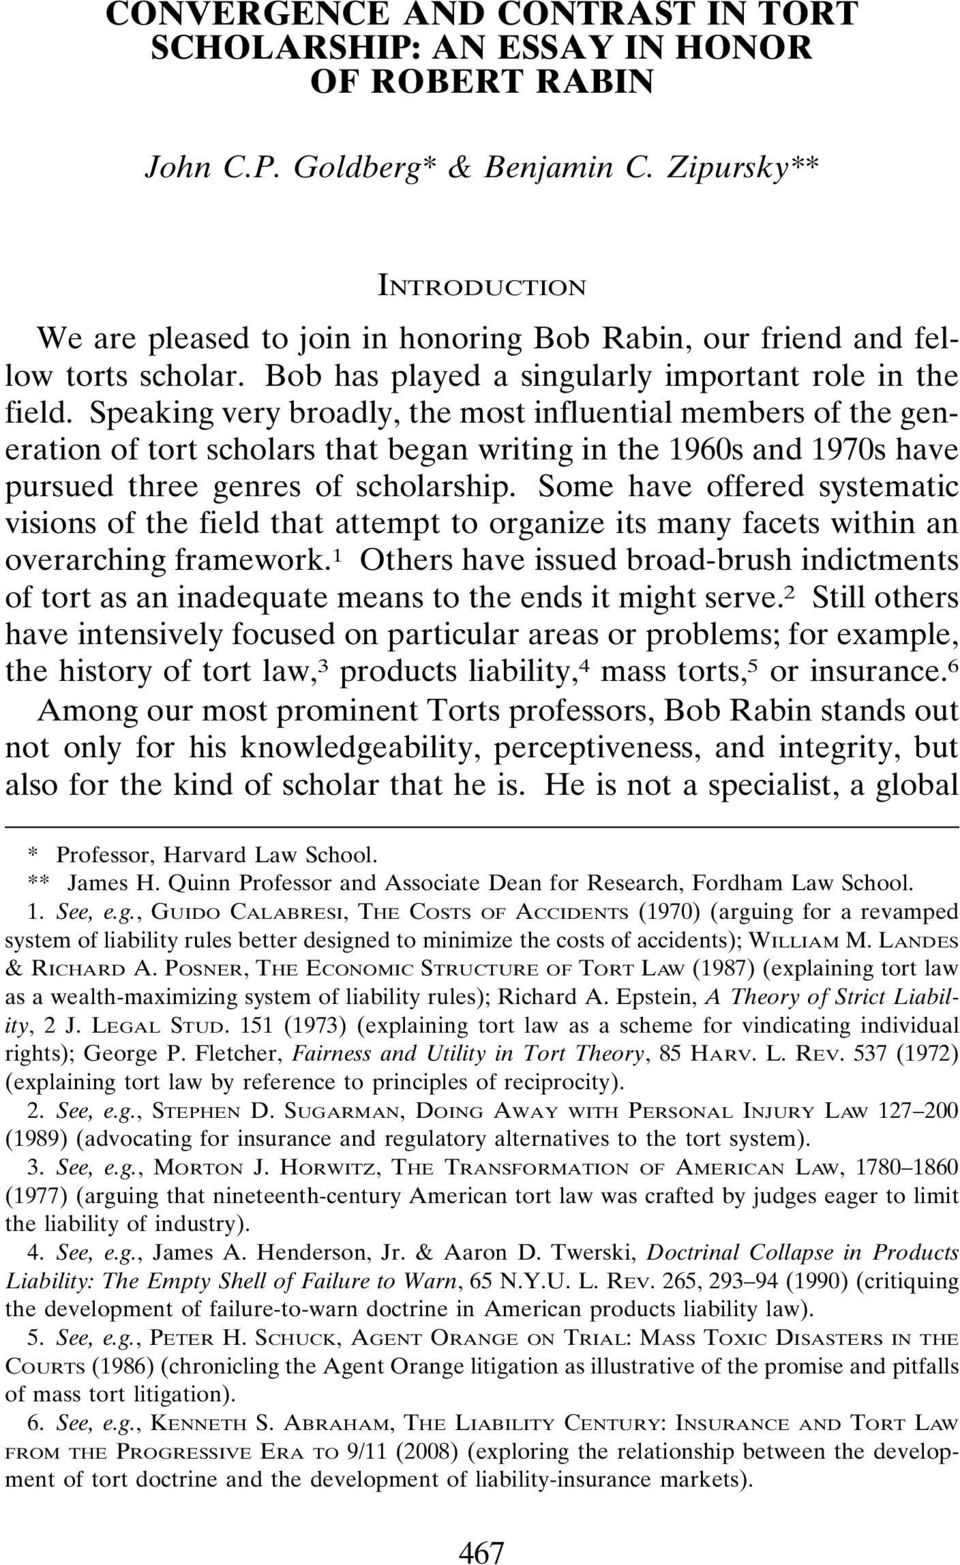 Speaking very broadly, the most influential members of the generation of tort scholars that began writing in the 1960s and 1970s have pursued three genres of scholarship.